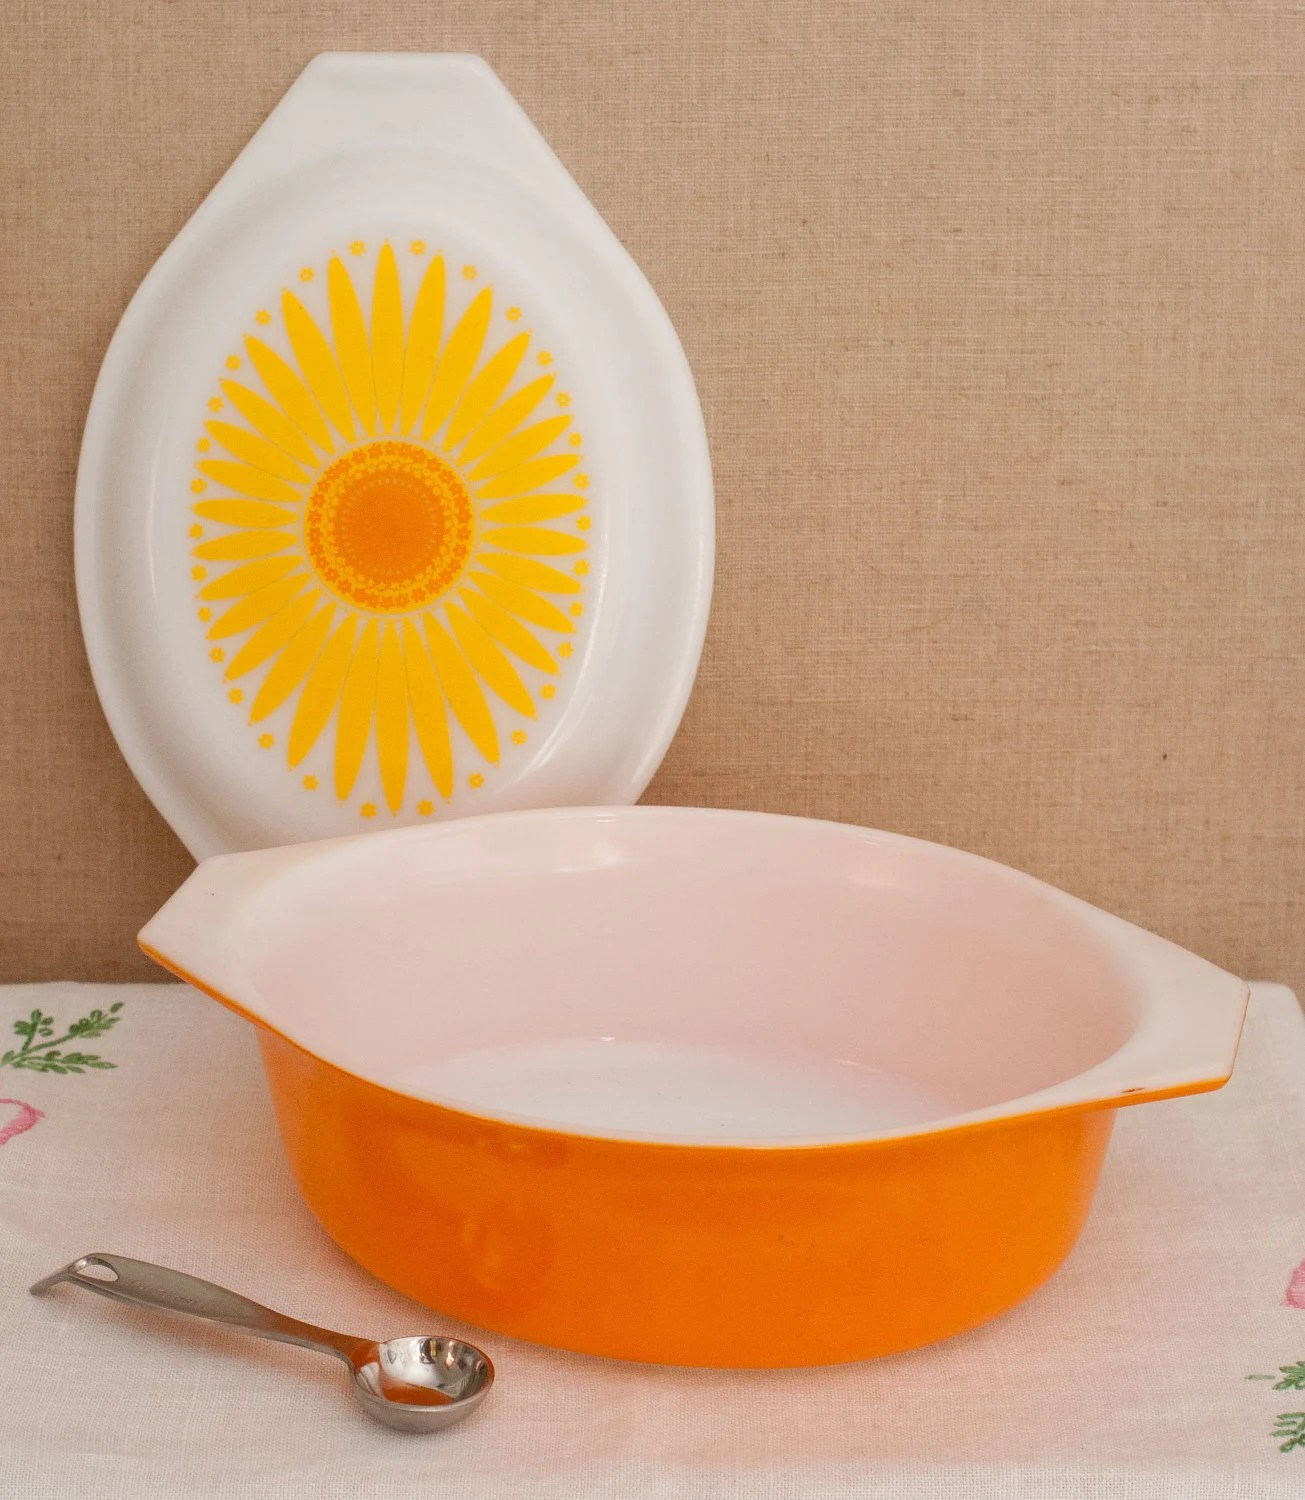 Vintage Oval Pyrex Yellow and Orange Daisy 2.5 Quart Casserole with Cinderella Handles